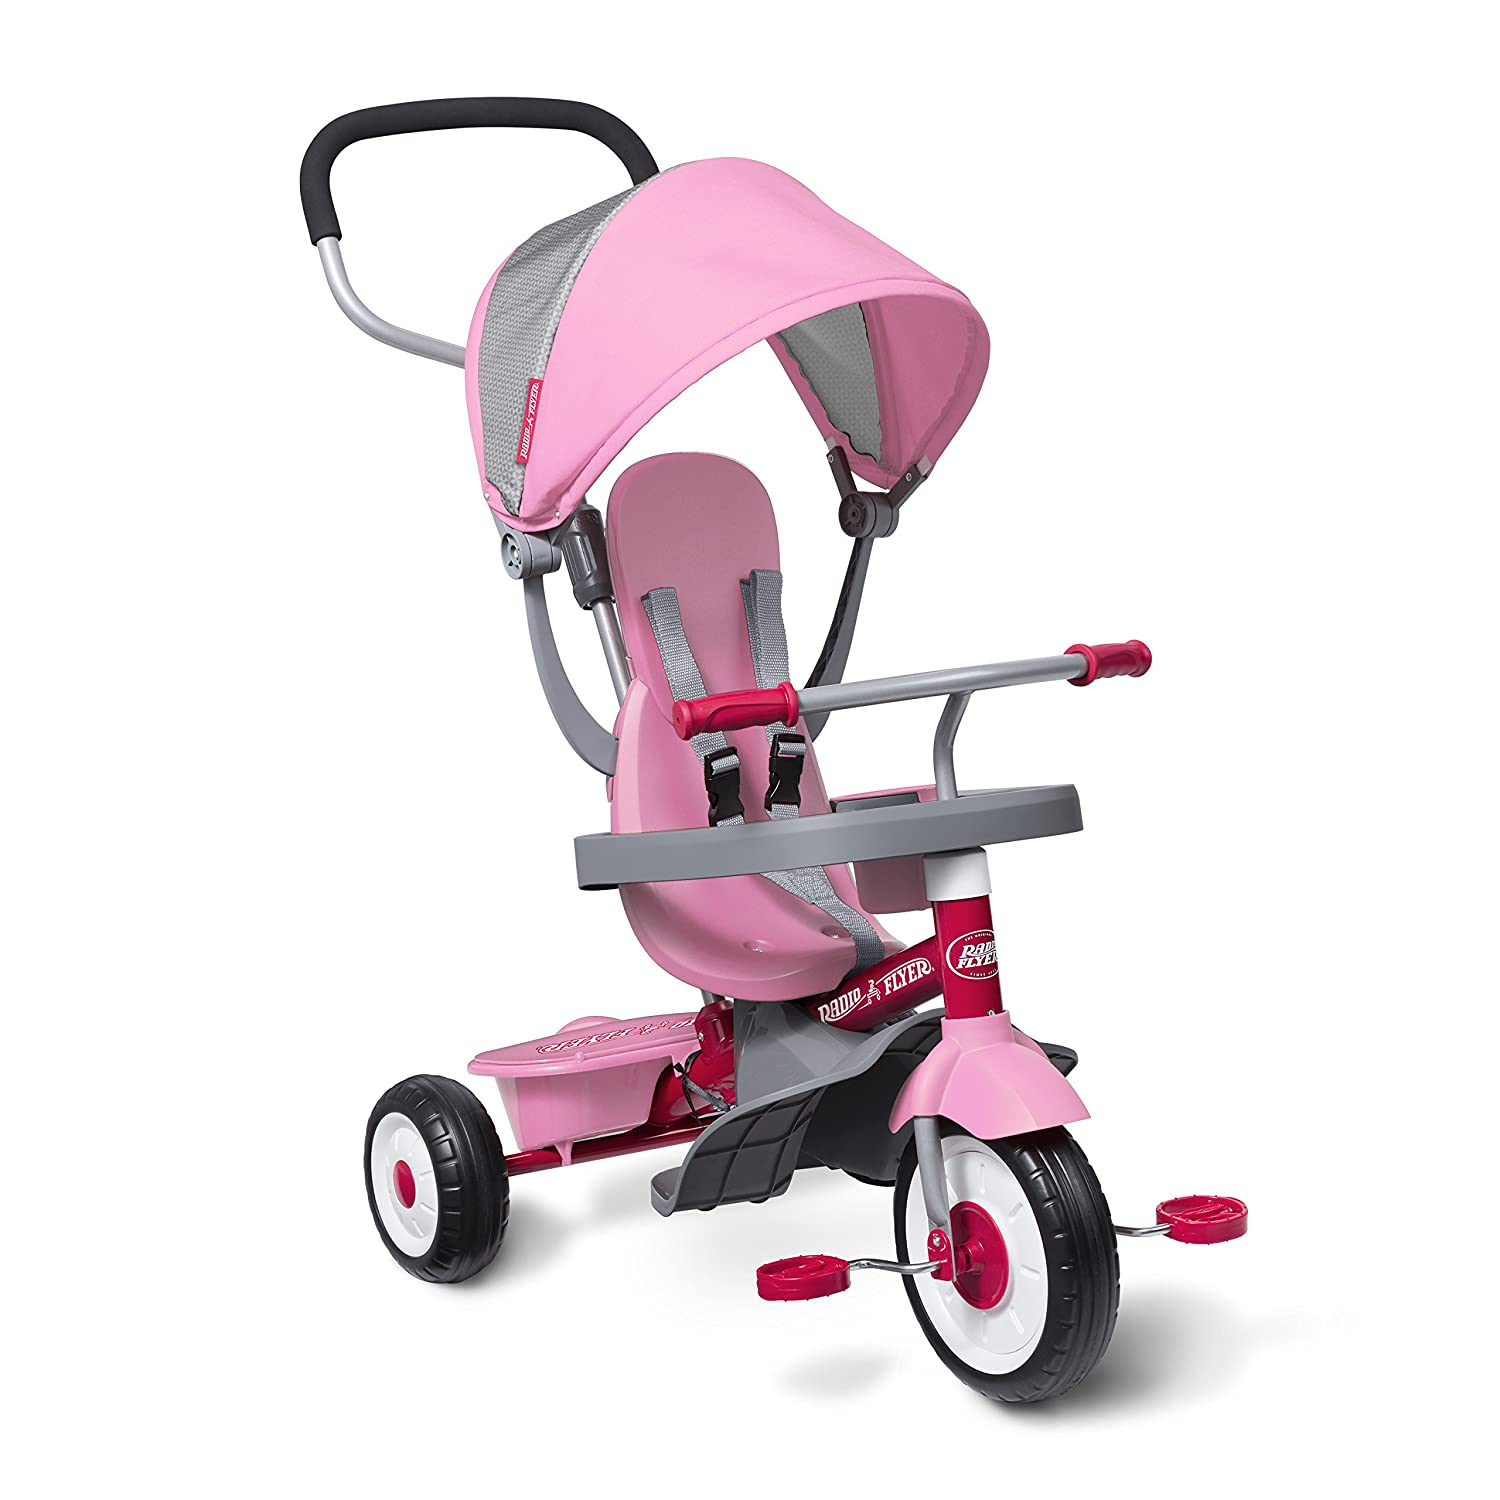 Radio Flyer 4 in 1 Stroll 'N Trike Pink